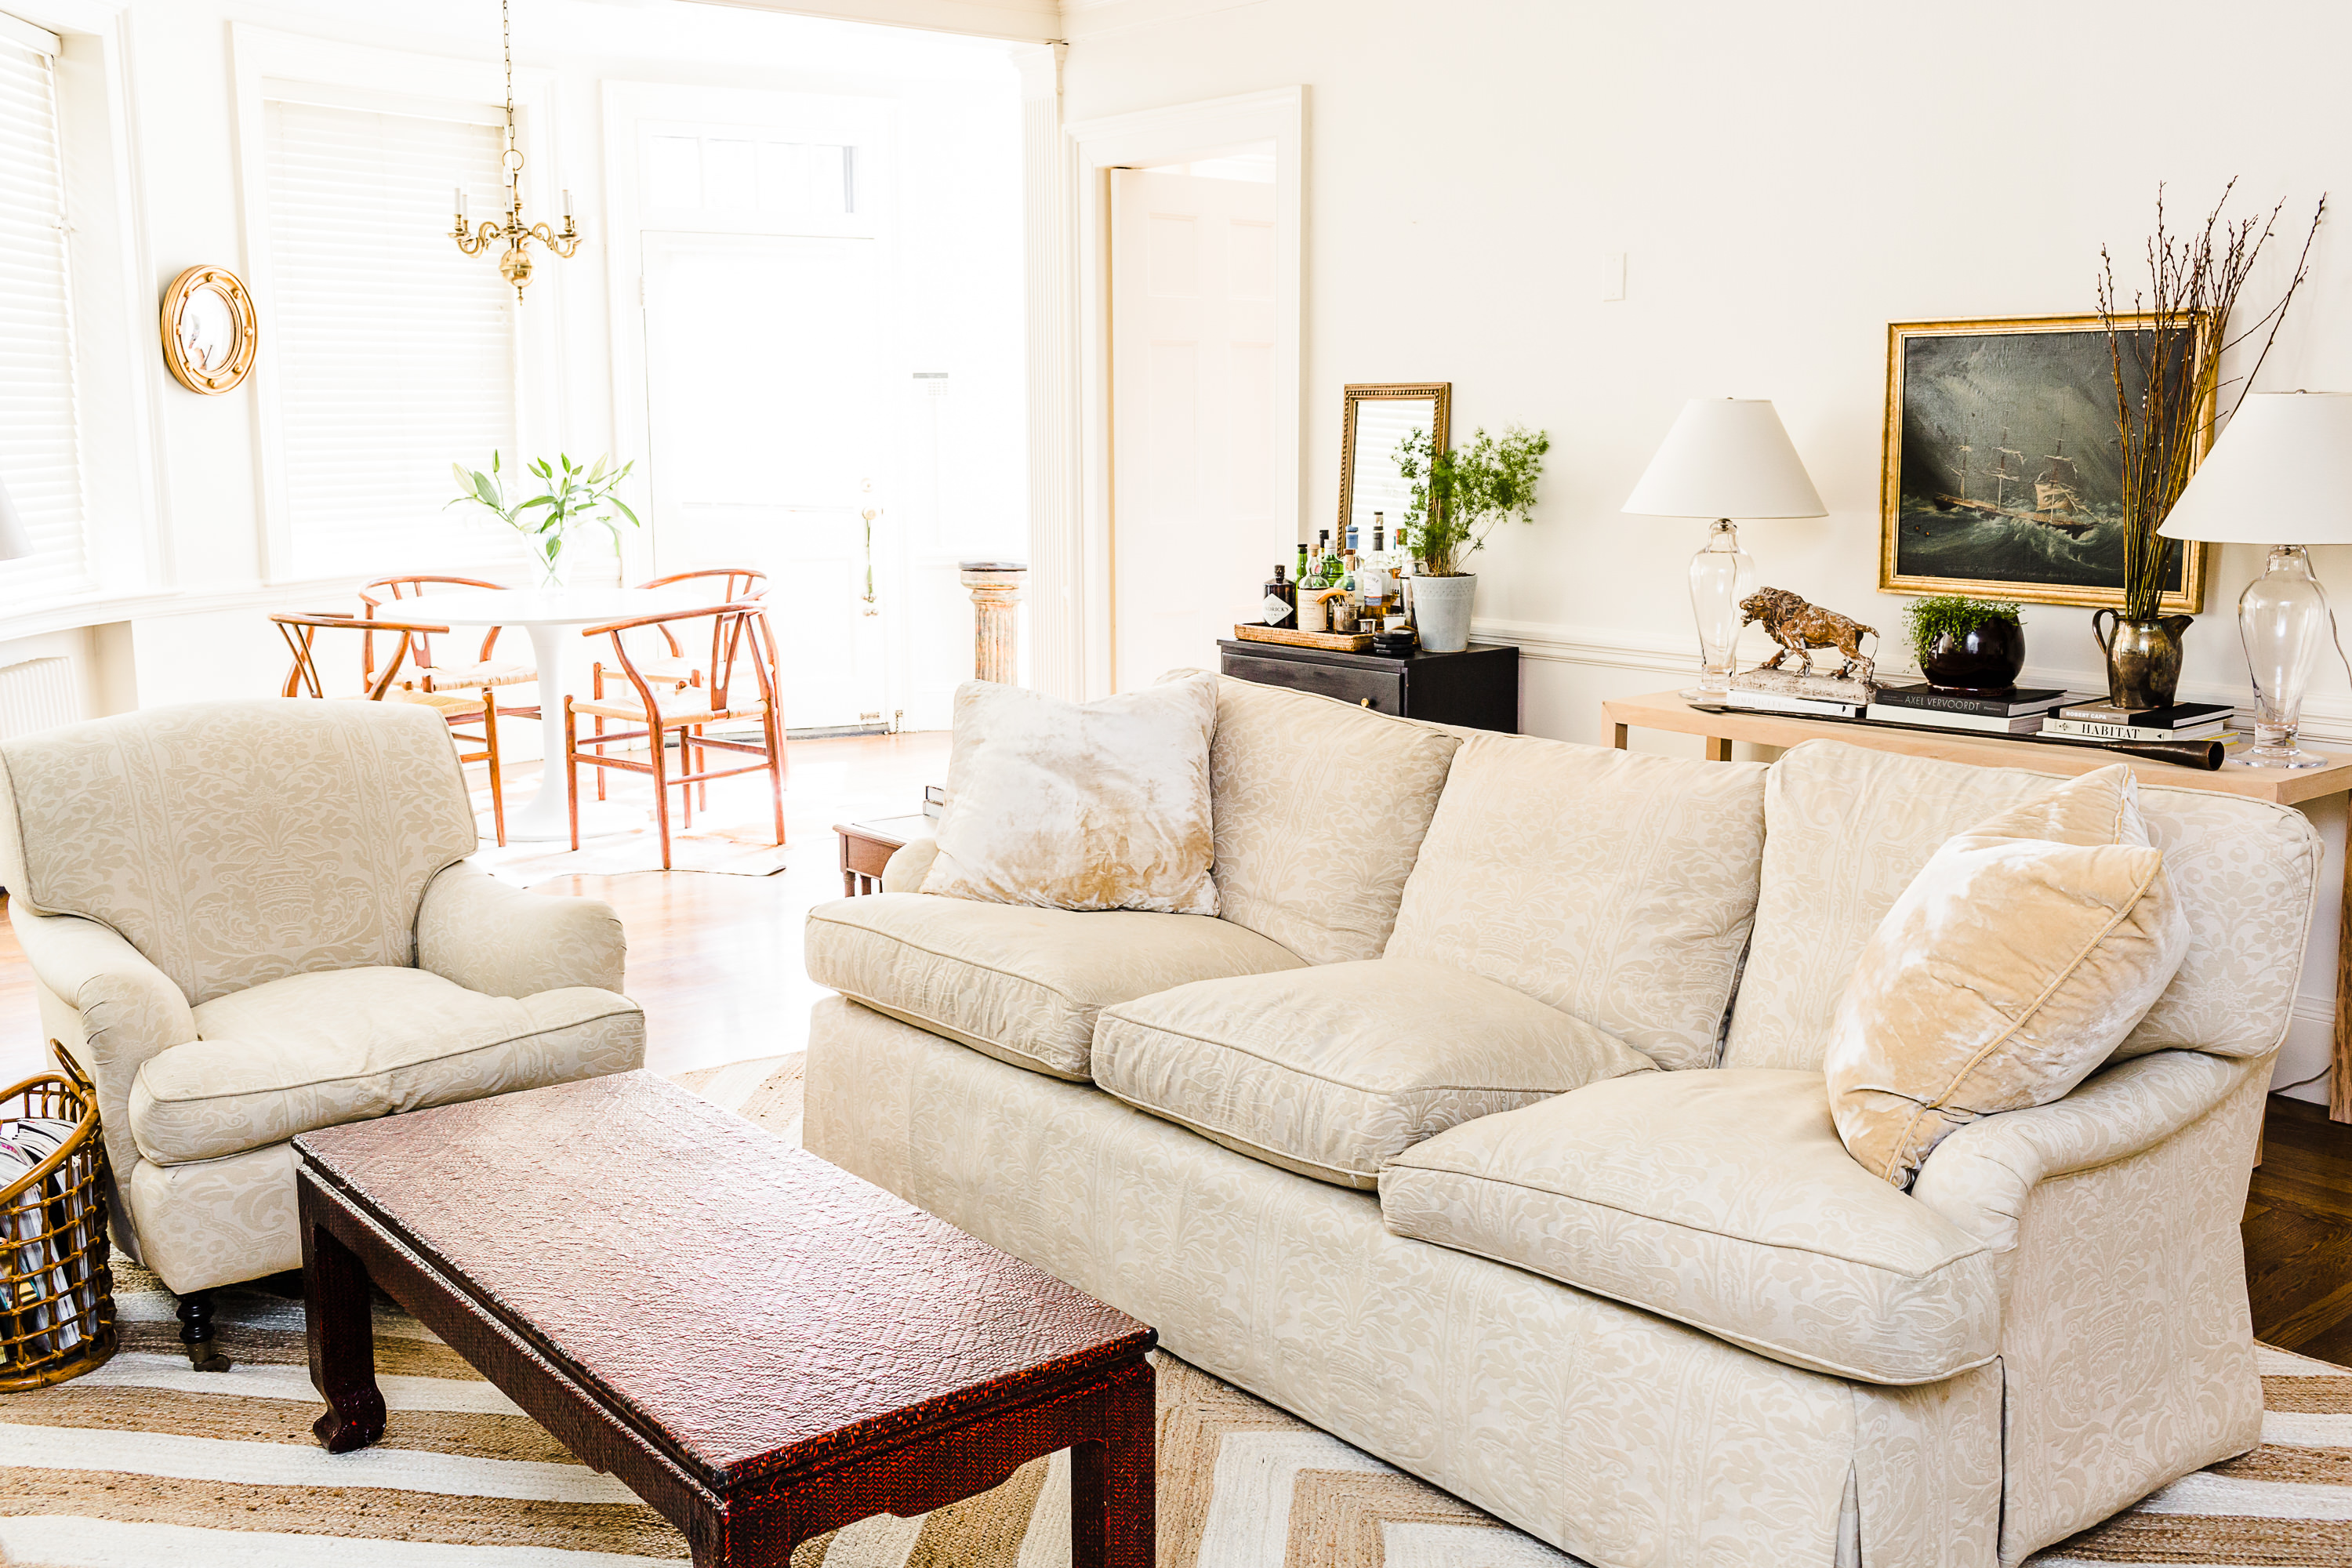 Where To Buy English Roll-Arm Sofas | Apartment Therapy